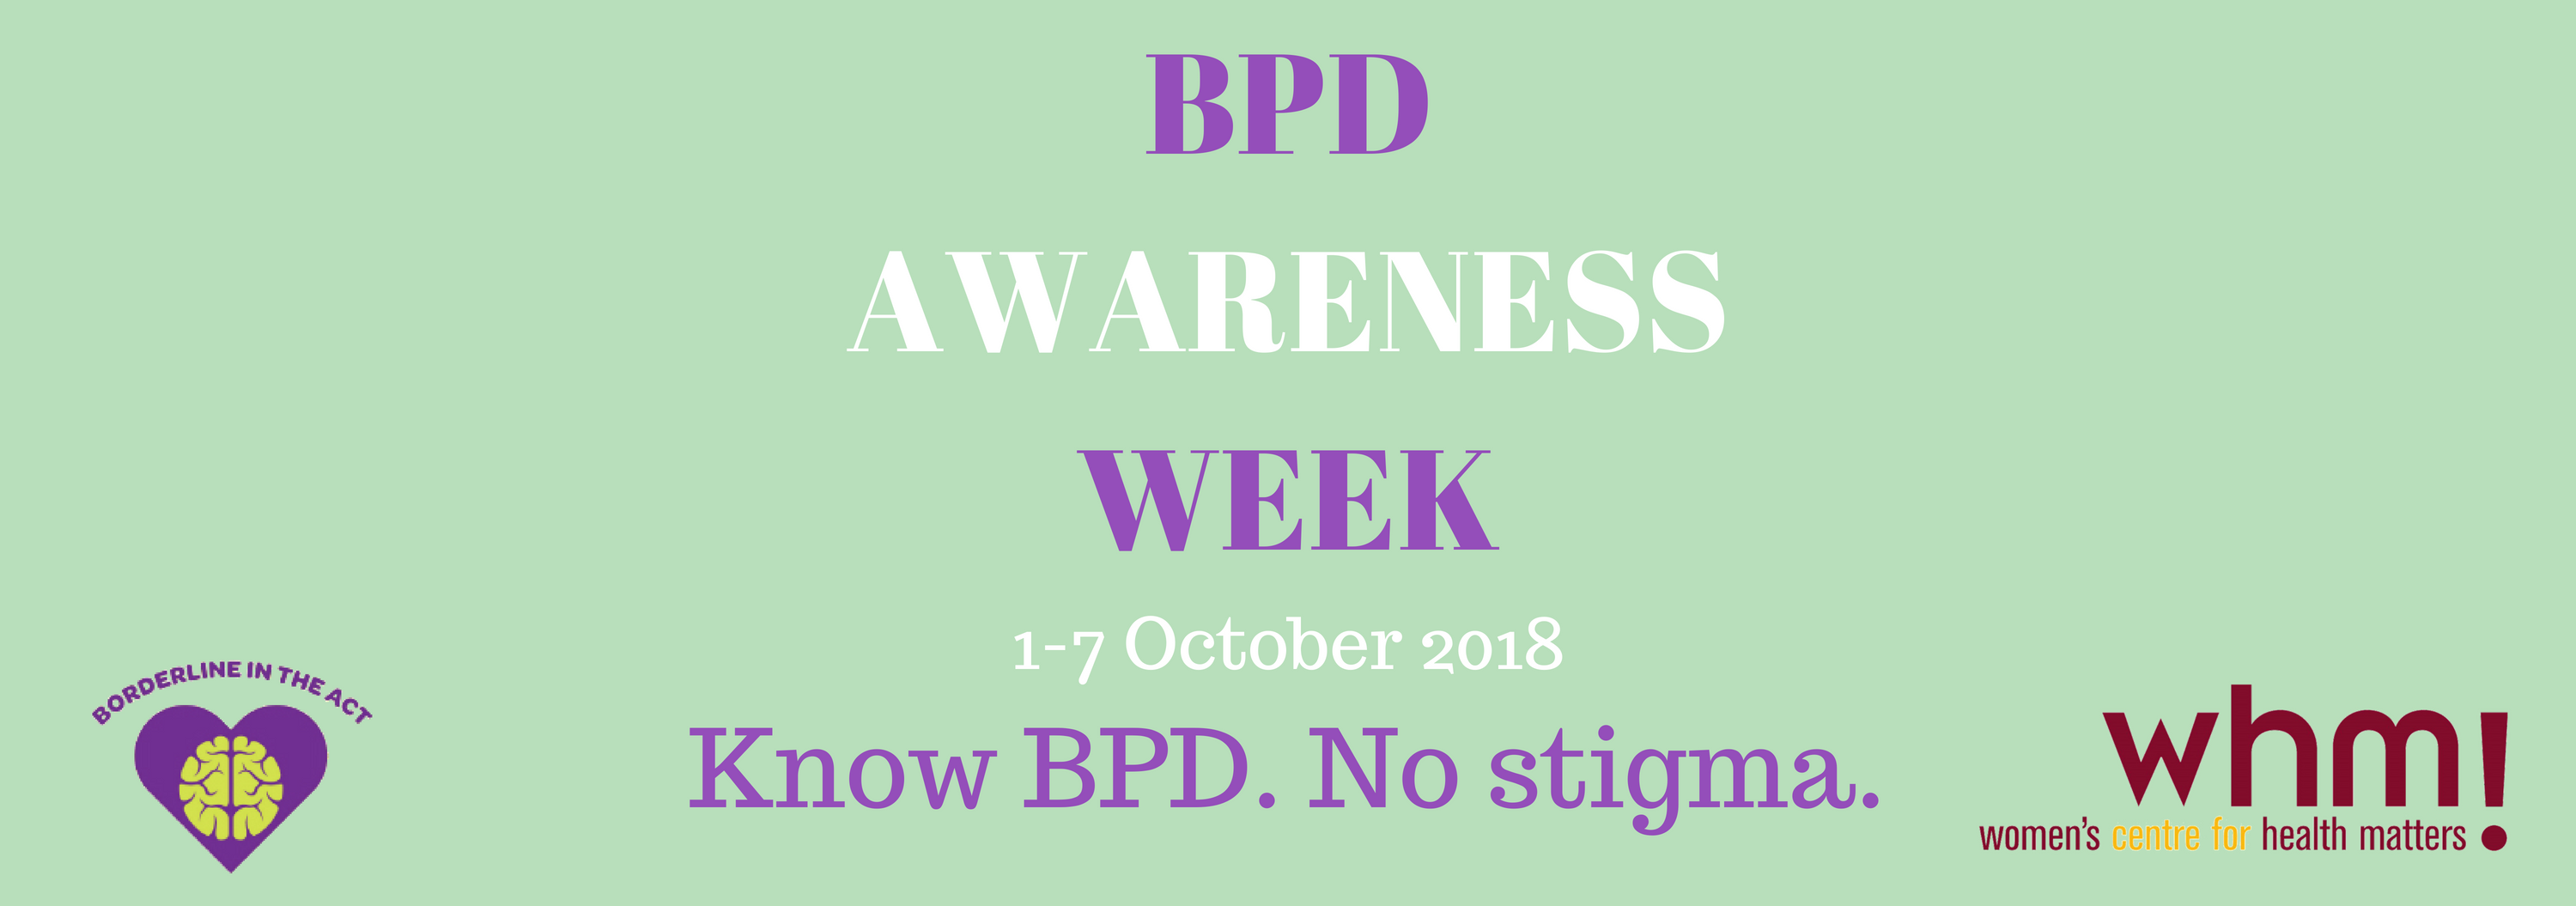 BPD Awareness Week 1-7 October 2018. Know BPD. No stigma.